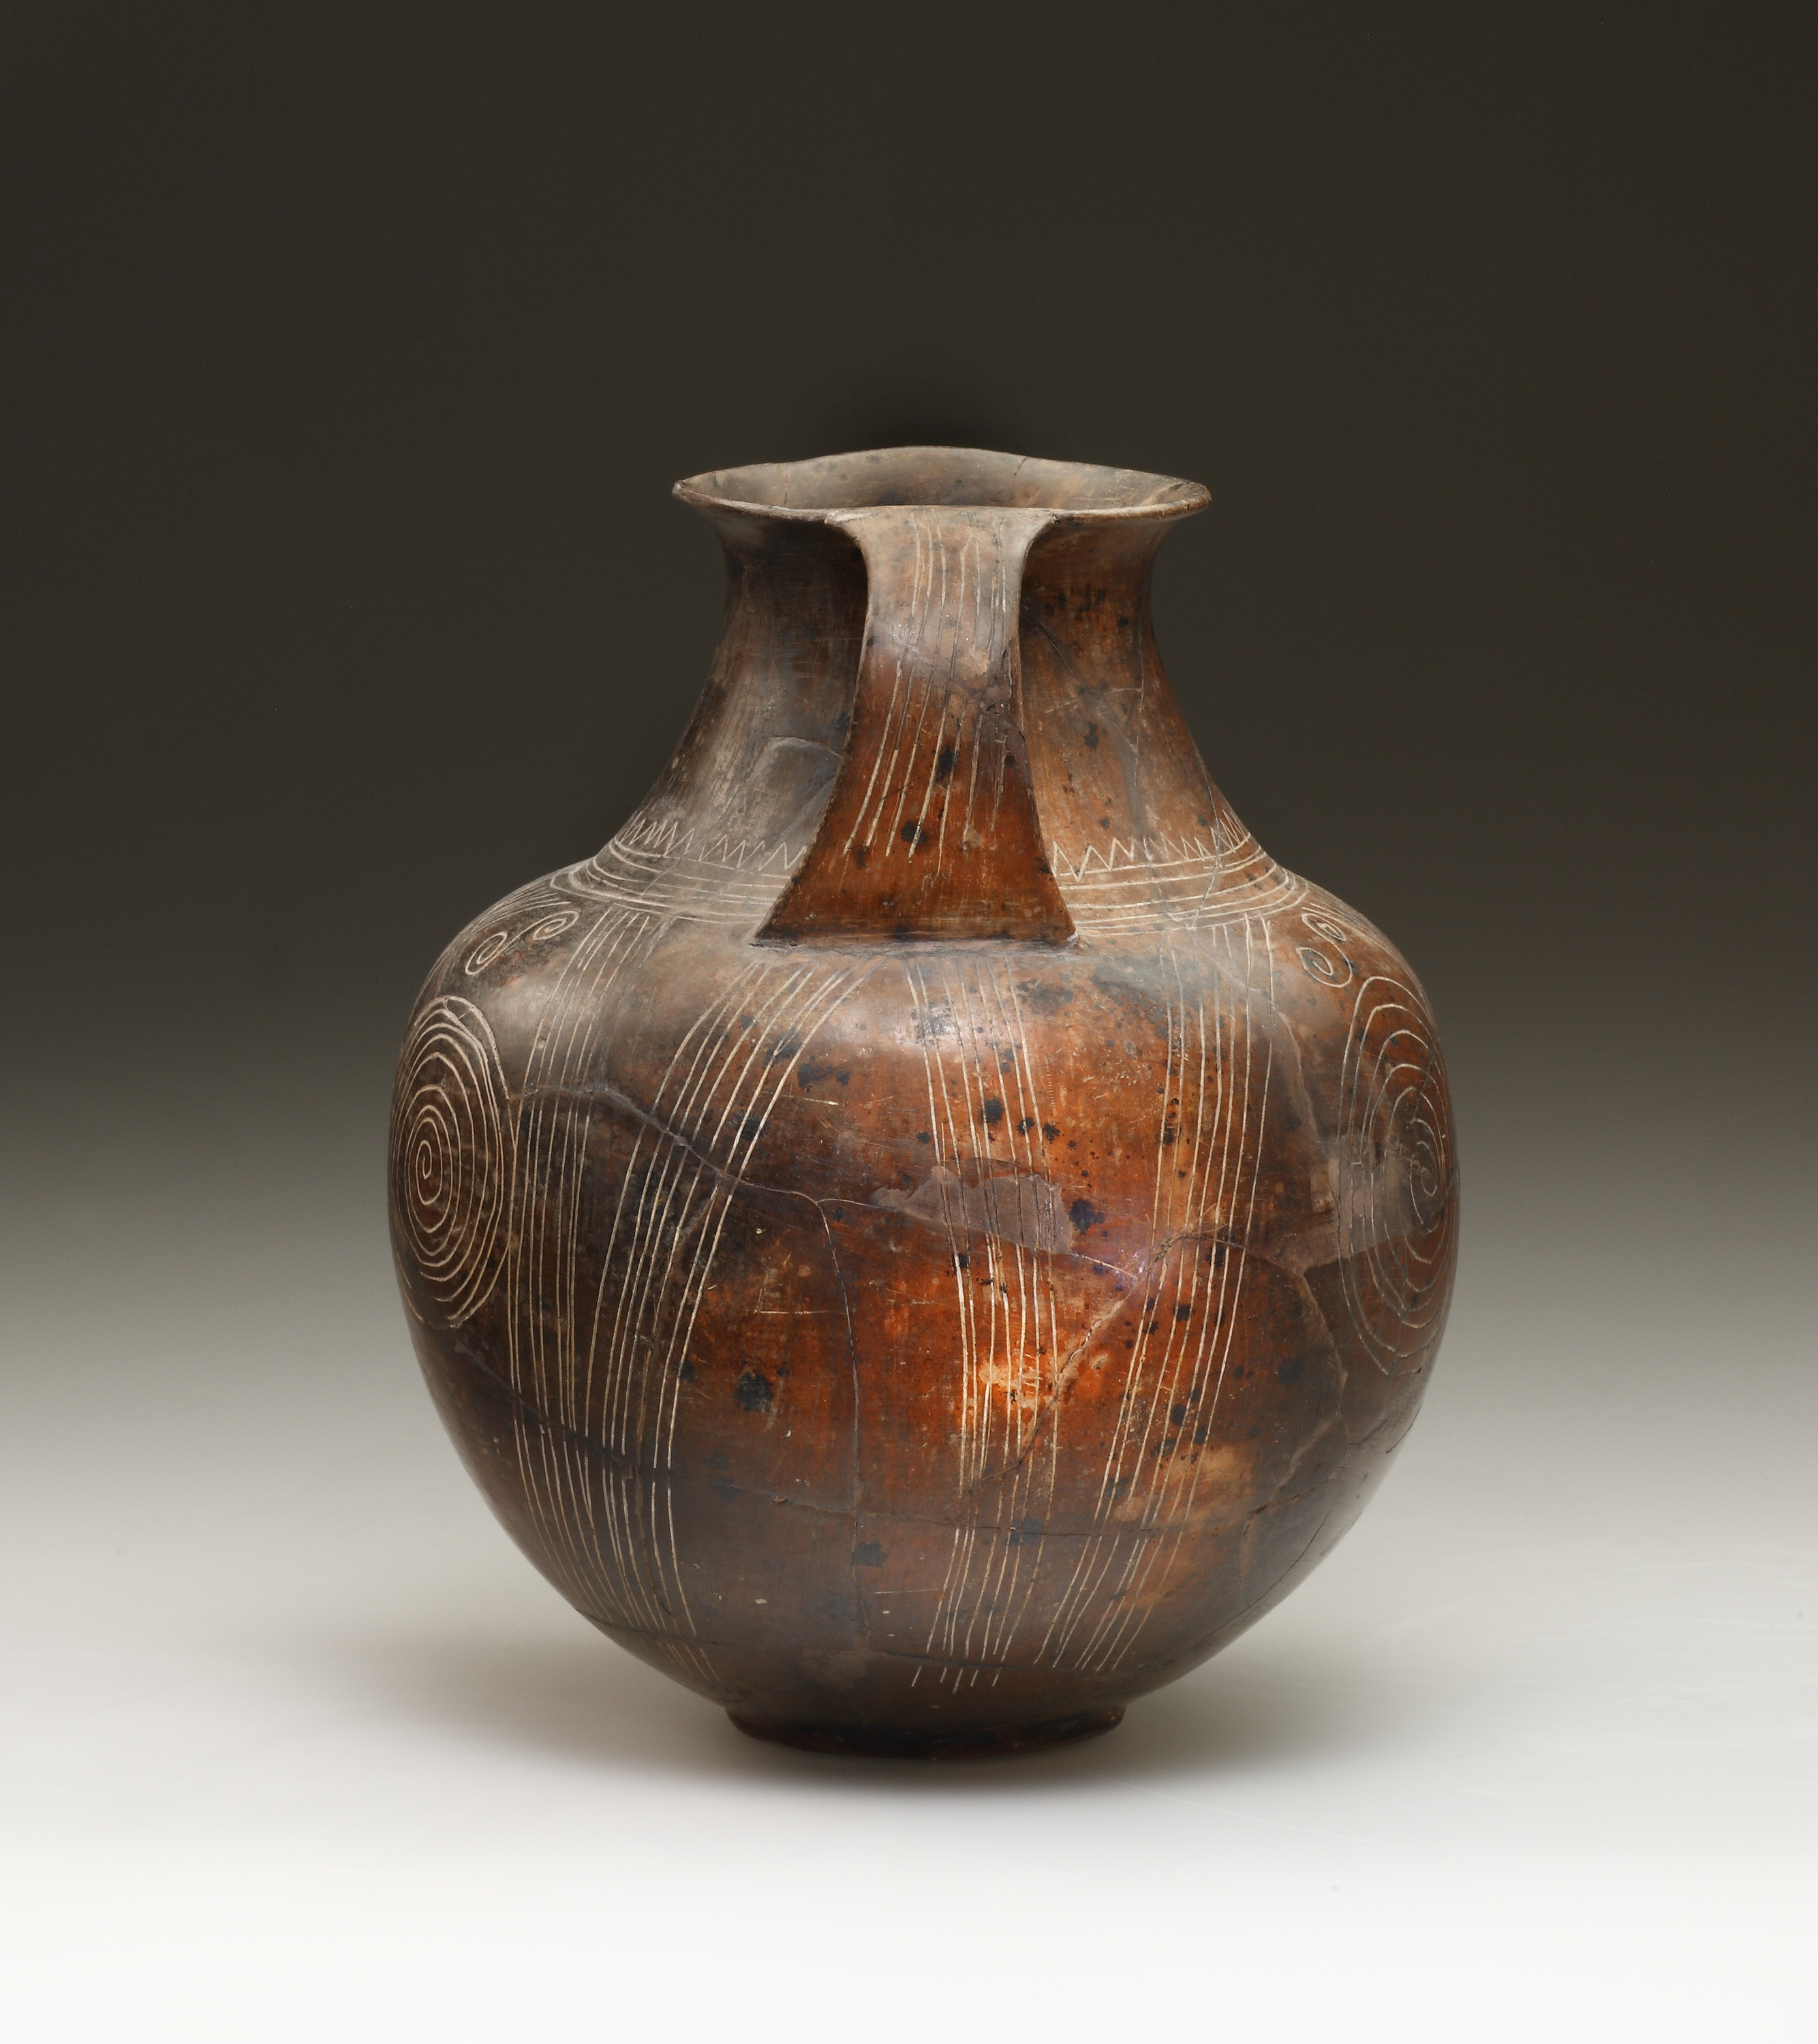 Lot 9 - An Etruscan Impasto Amphora with Incised Geometric and Spiral Decoration